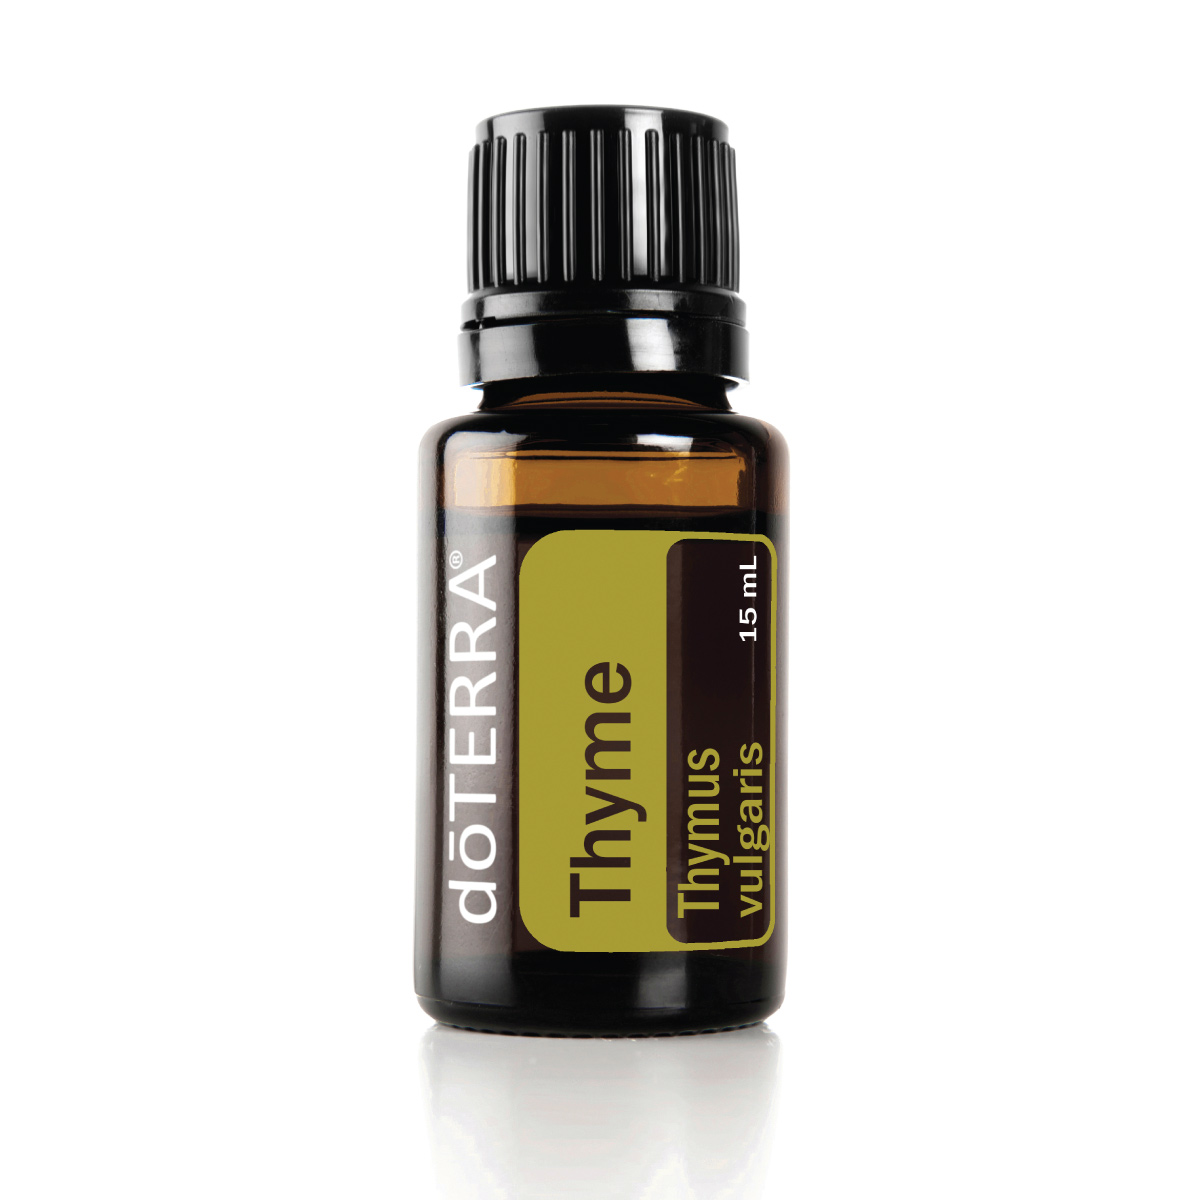 Bottle of doTERRA Thyme essential oil. What are the benefits of Thyme oil? Thyme oil provides antioxidants, supports the immune system, and can repel insects.